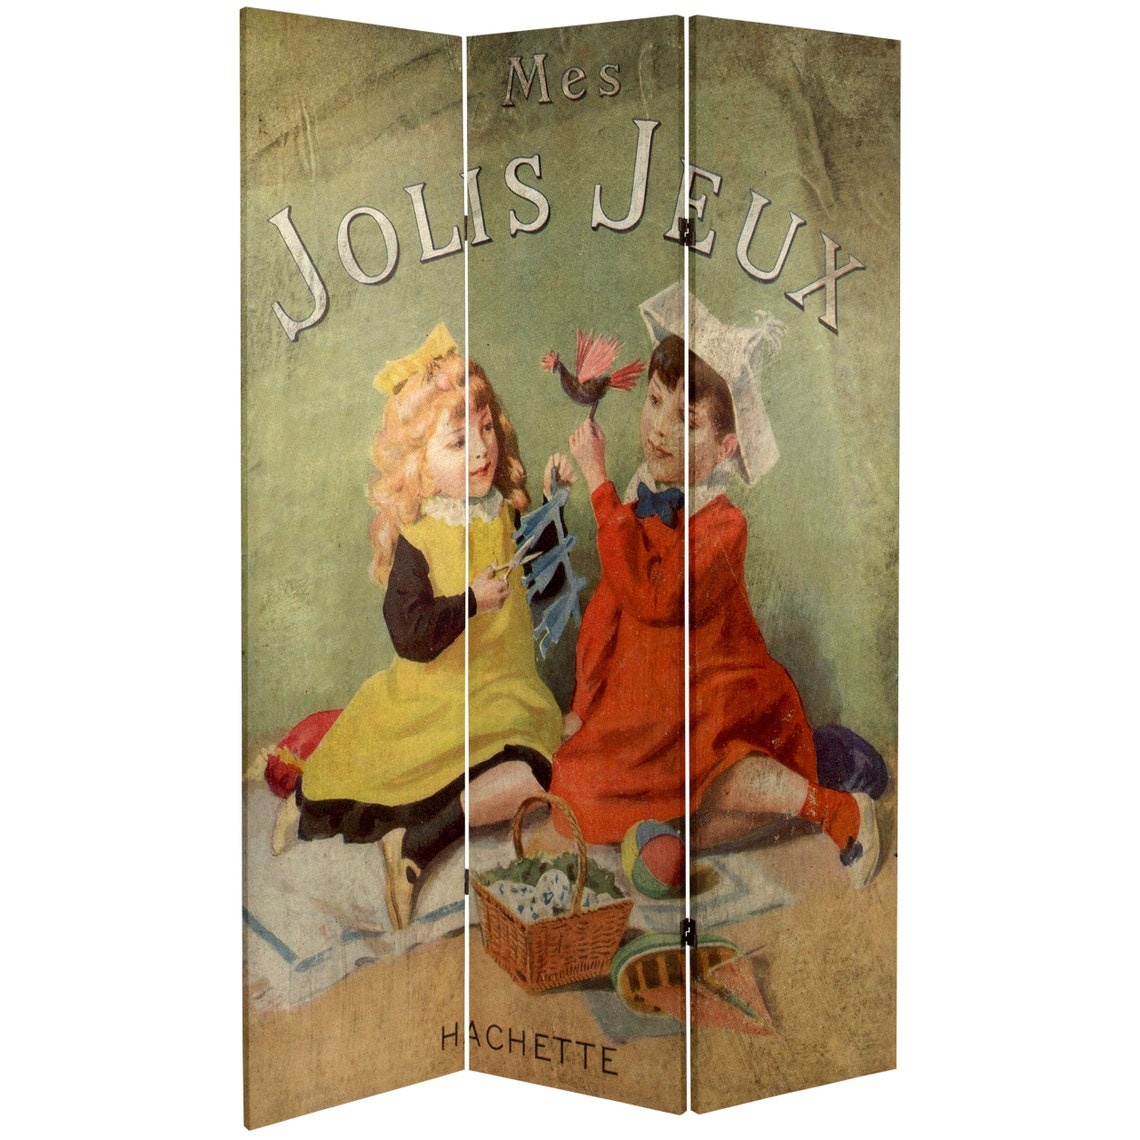 6 ft. Tall Double Sided Children's Stories Canvas Room Divider